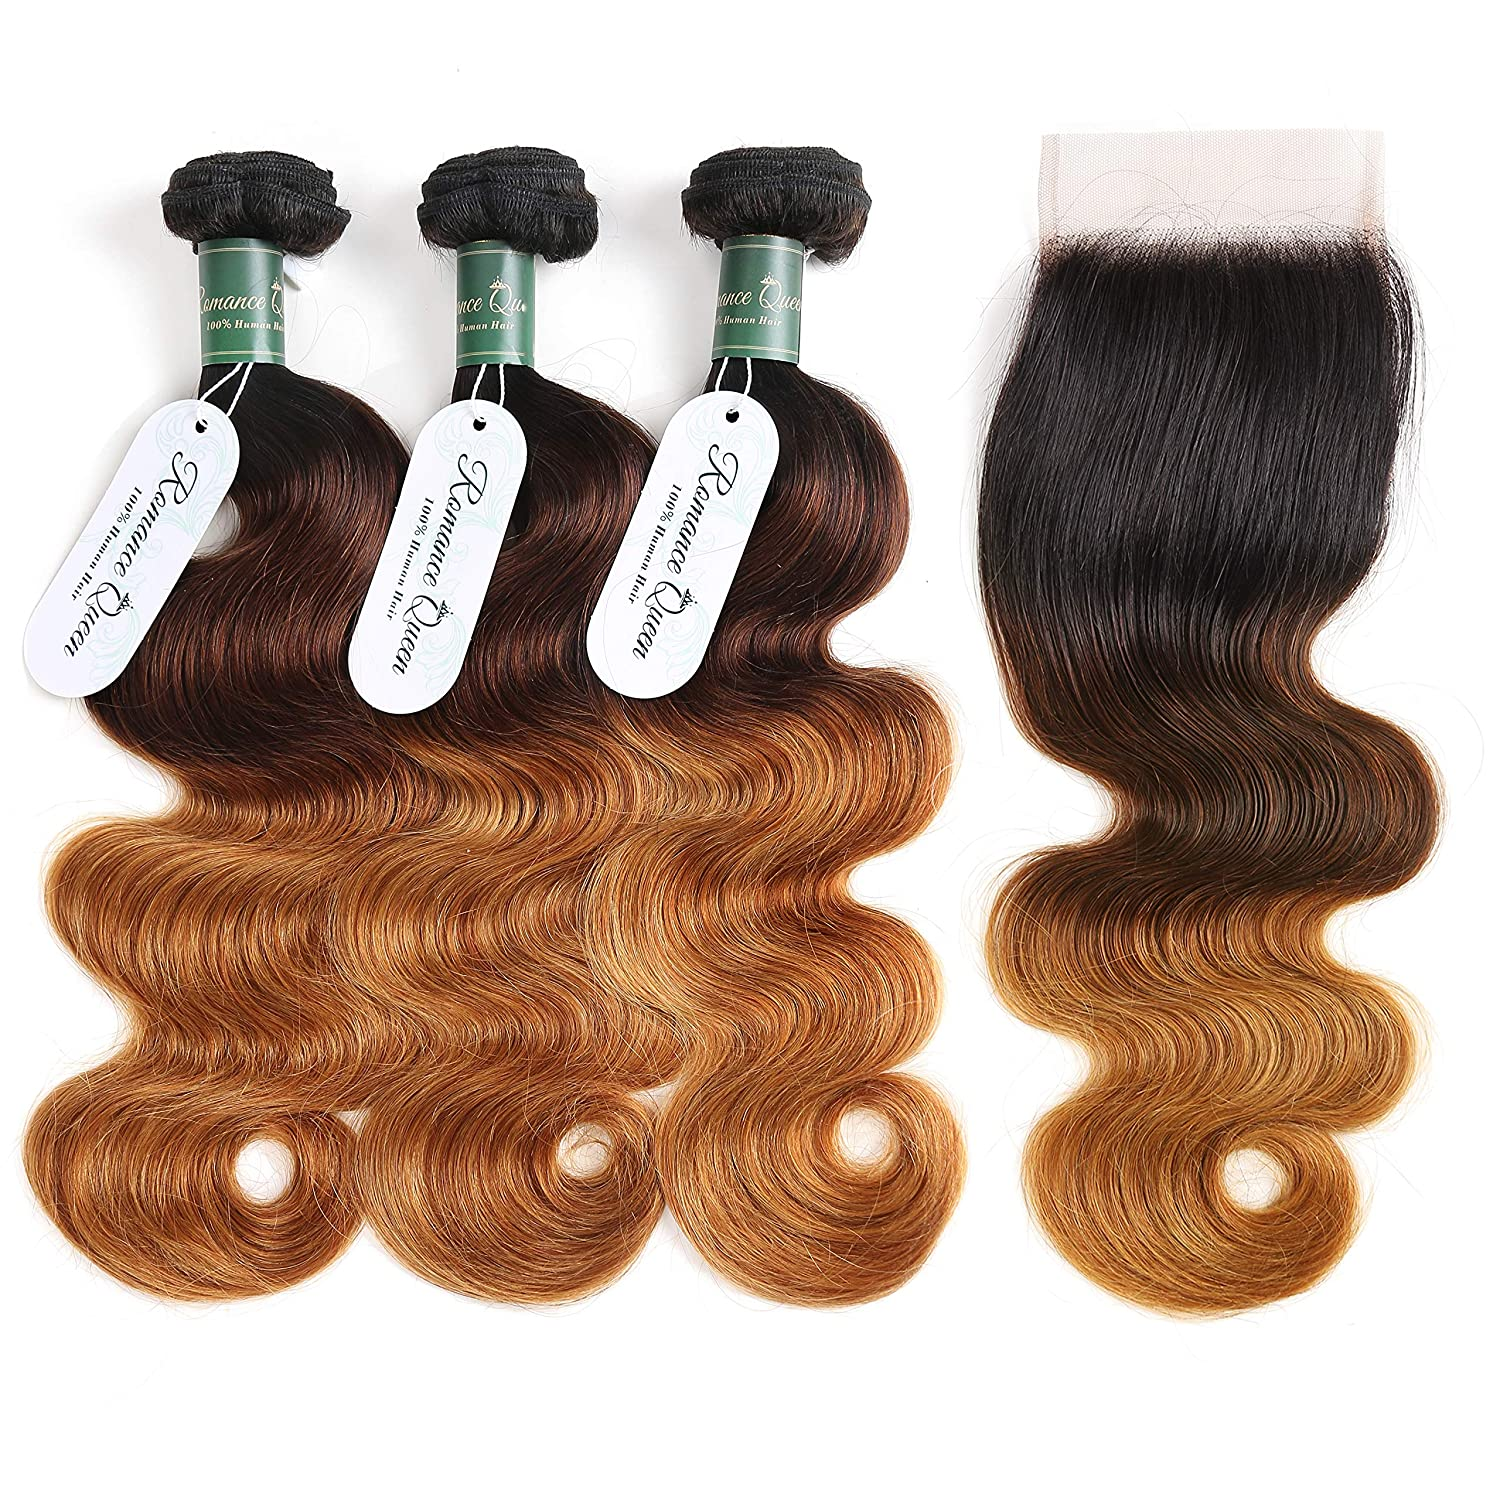 Brazilian Human Hair Outstanding Ombre Bundles Closure With Wave 3 Body Super popular specialty store